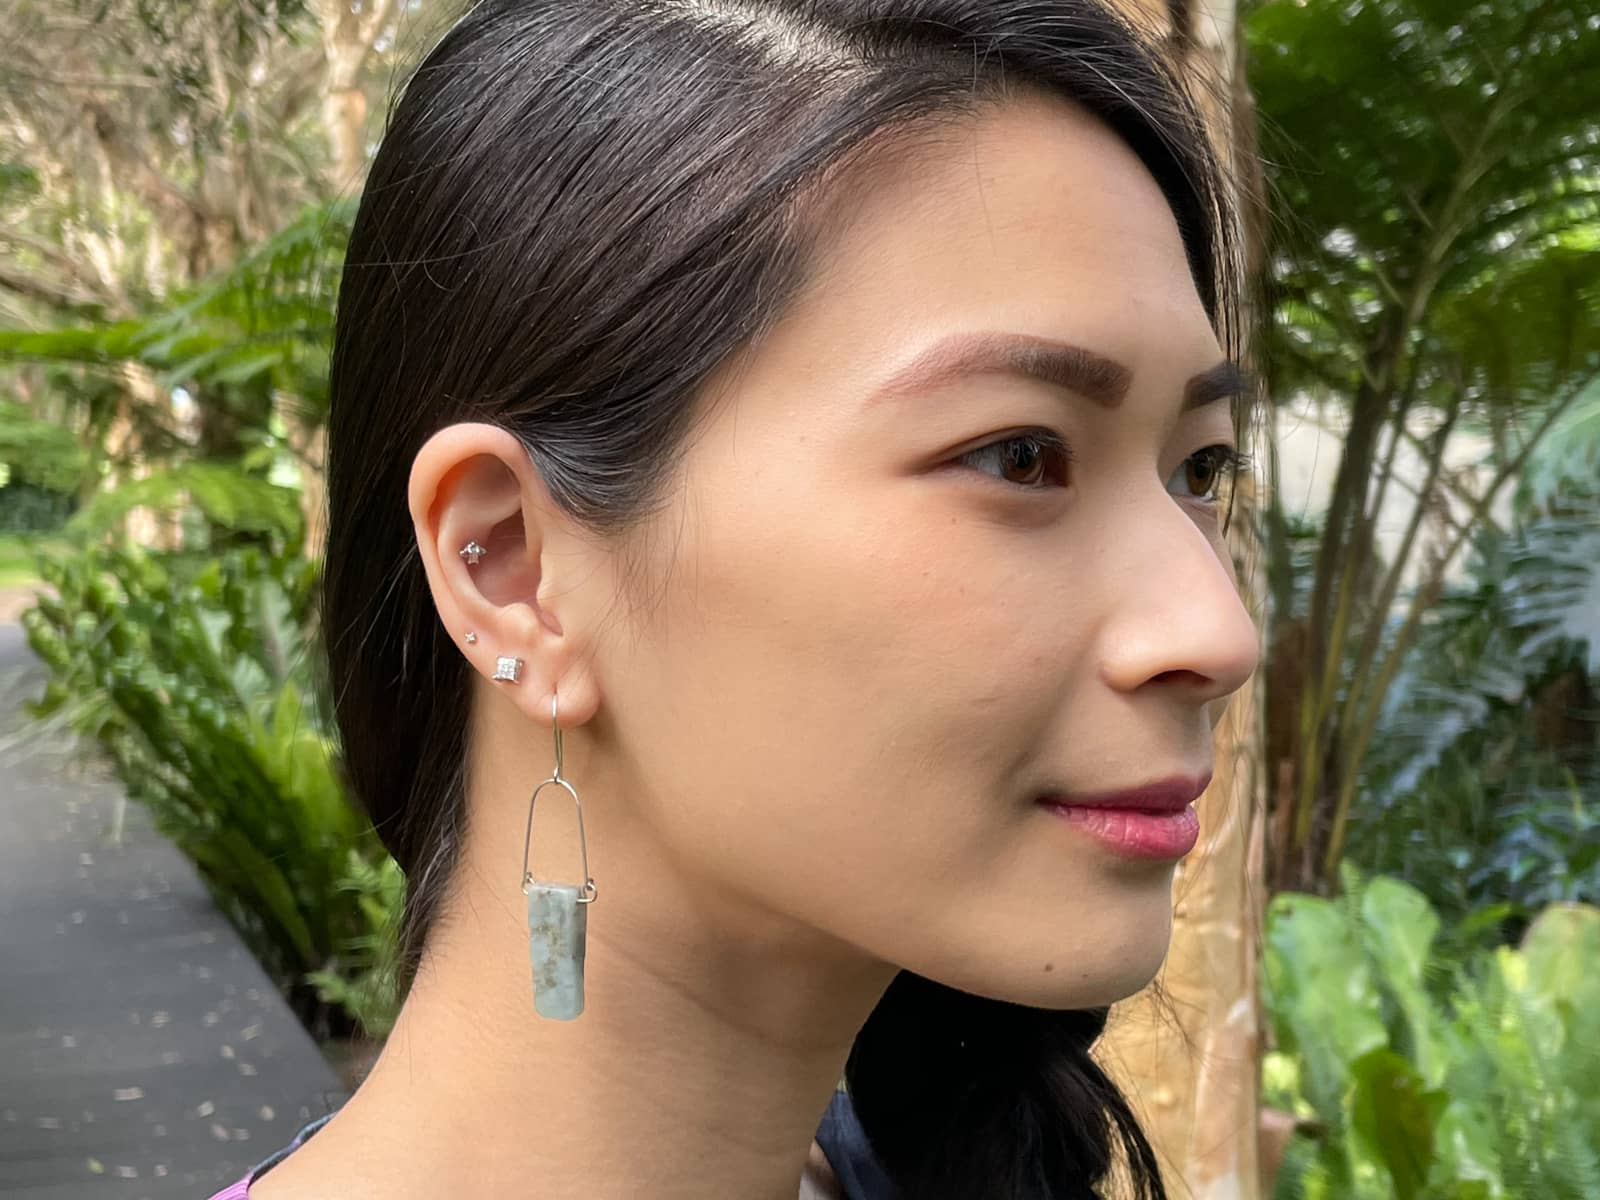 A close-up of a woman's face from the side. She has silver earrings in her ear, with the bottommost earring being a silver wire earring with a raw aquamarine stone drop